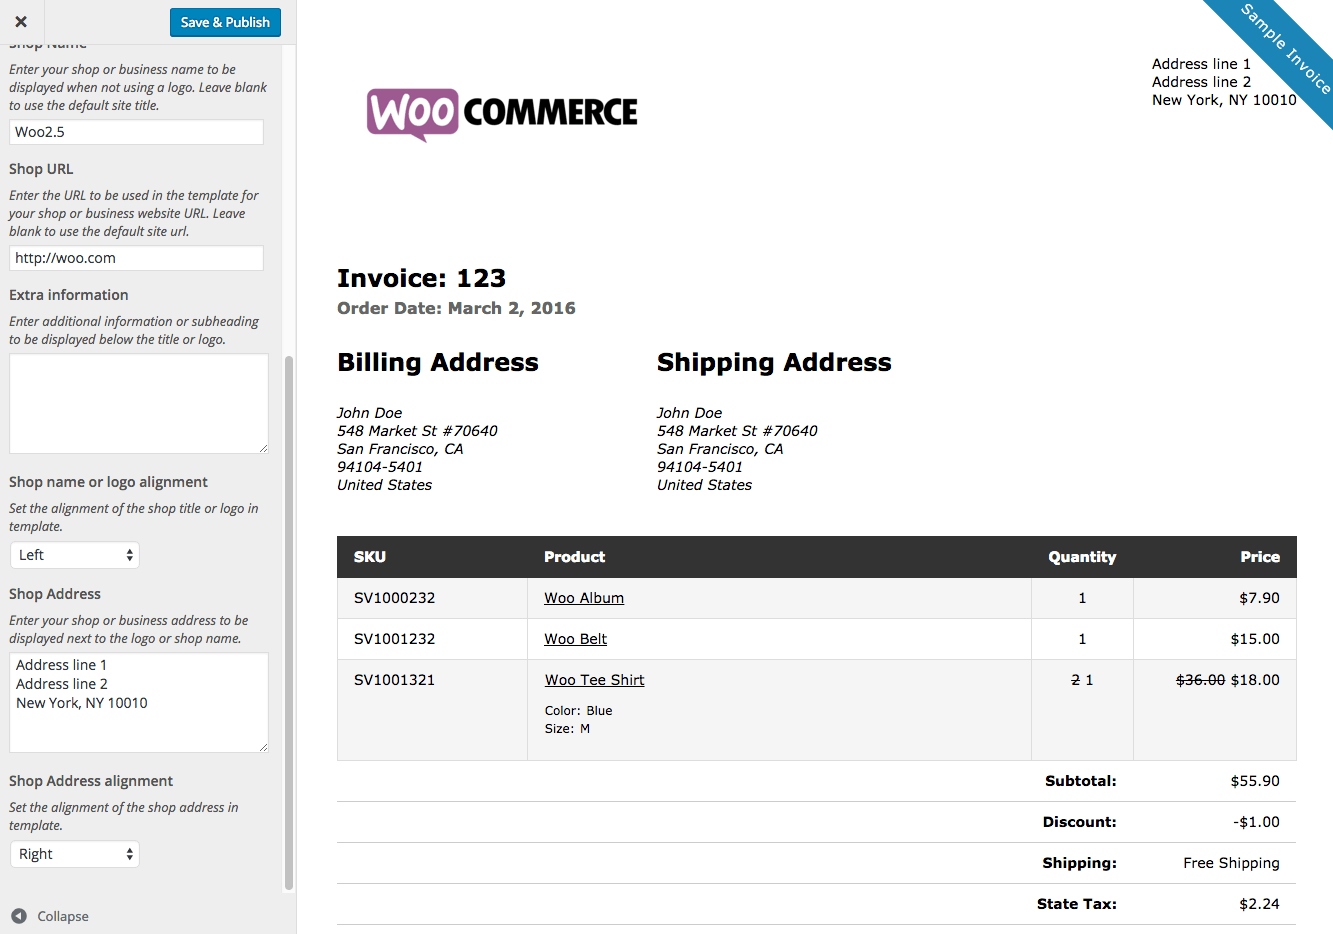 Ebitus  Remarkable Woocommerce Print Invoices Amp Packing Lists  Woocommerce Docs With Luxury Woocommerce Print Invoices  Packing Lists Customizer With Amazing Travel Invoice Also Invoicing Systems In Addition Free Online Invoice Creator And It Invoice Template As Well As Shopify Invoices Additionally What Is Car Invoice Price From Docswoocommercecom With Ebitus  Luxury Woocommerce Print Invoices Amp Packing Lists  Woocommerce Docs With Amazing Woocommerce Print Invoices  Packing Lists Customizer And Remarkable Travel Invoice Also Invoicing Systems In Addition Free Online Invoice Creator From Docswoocommercecom